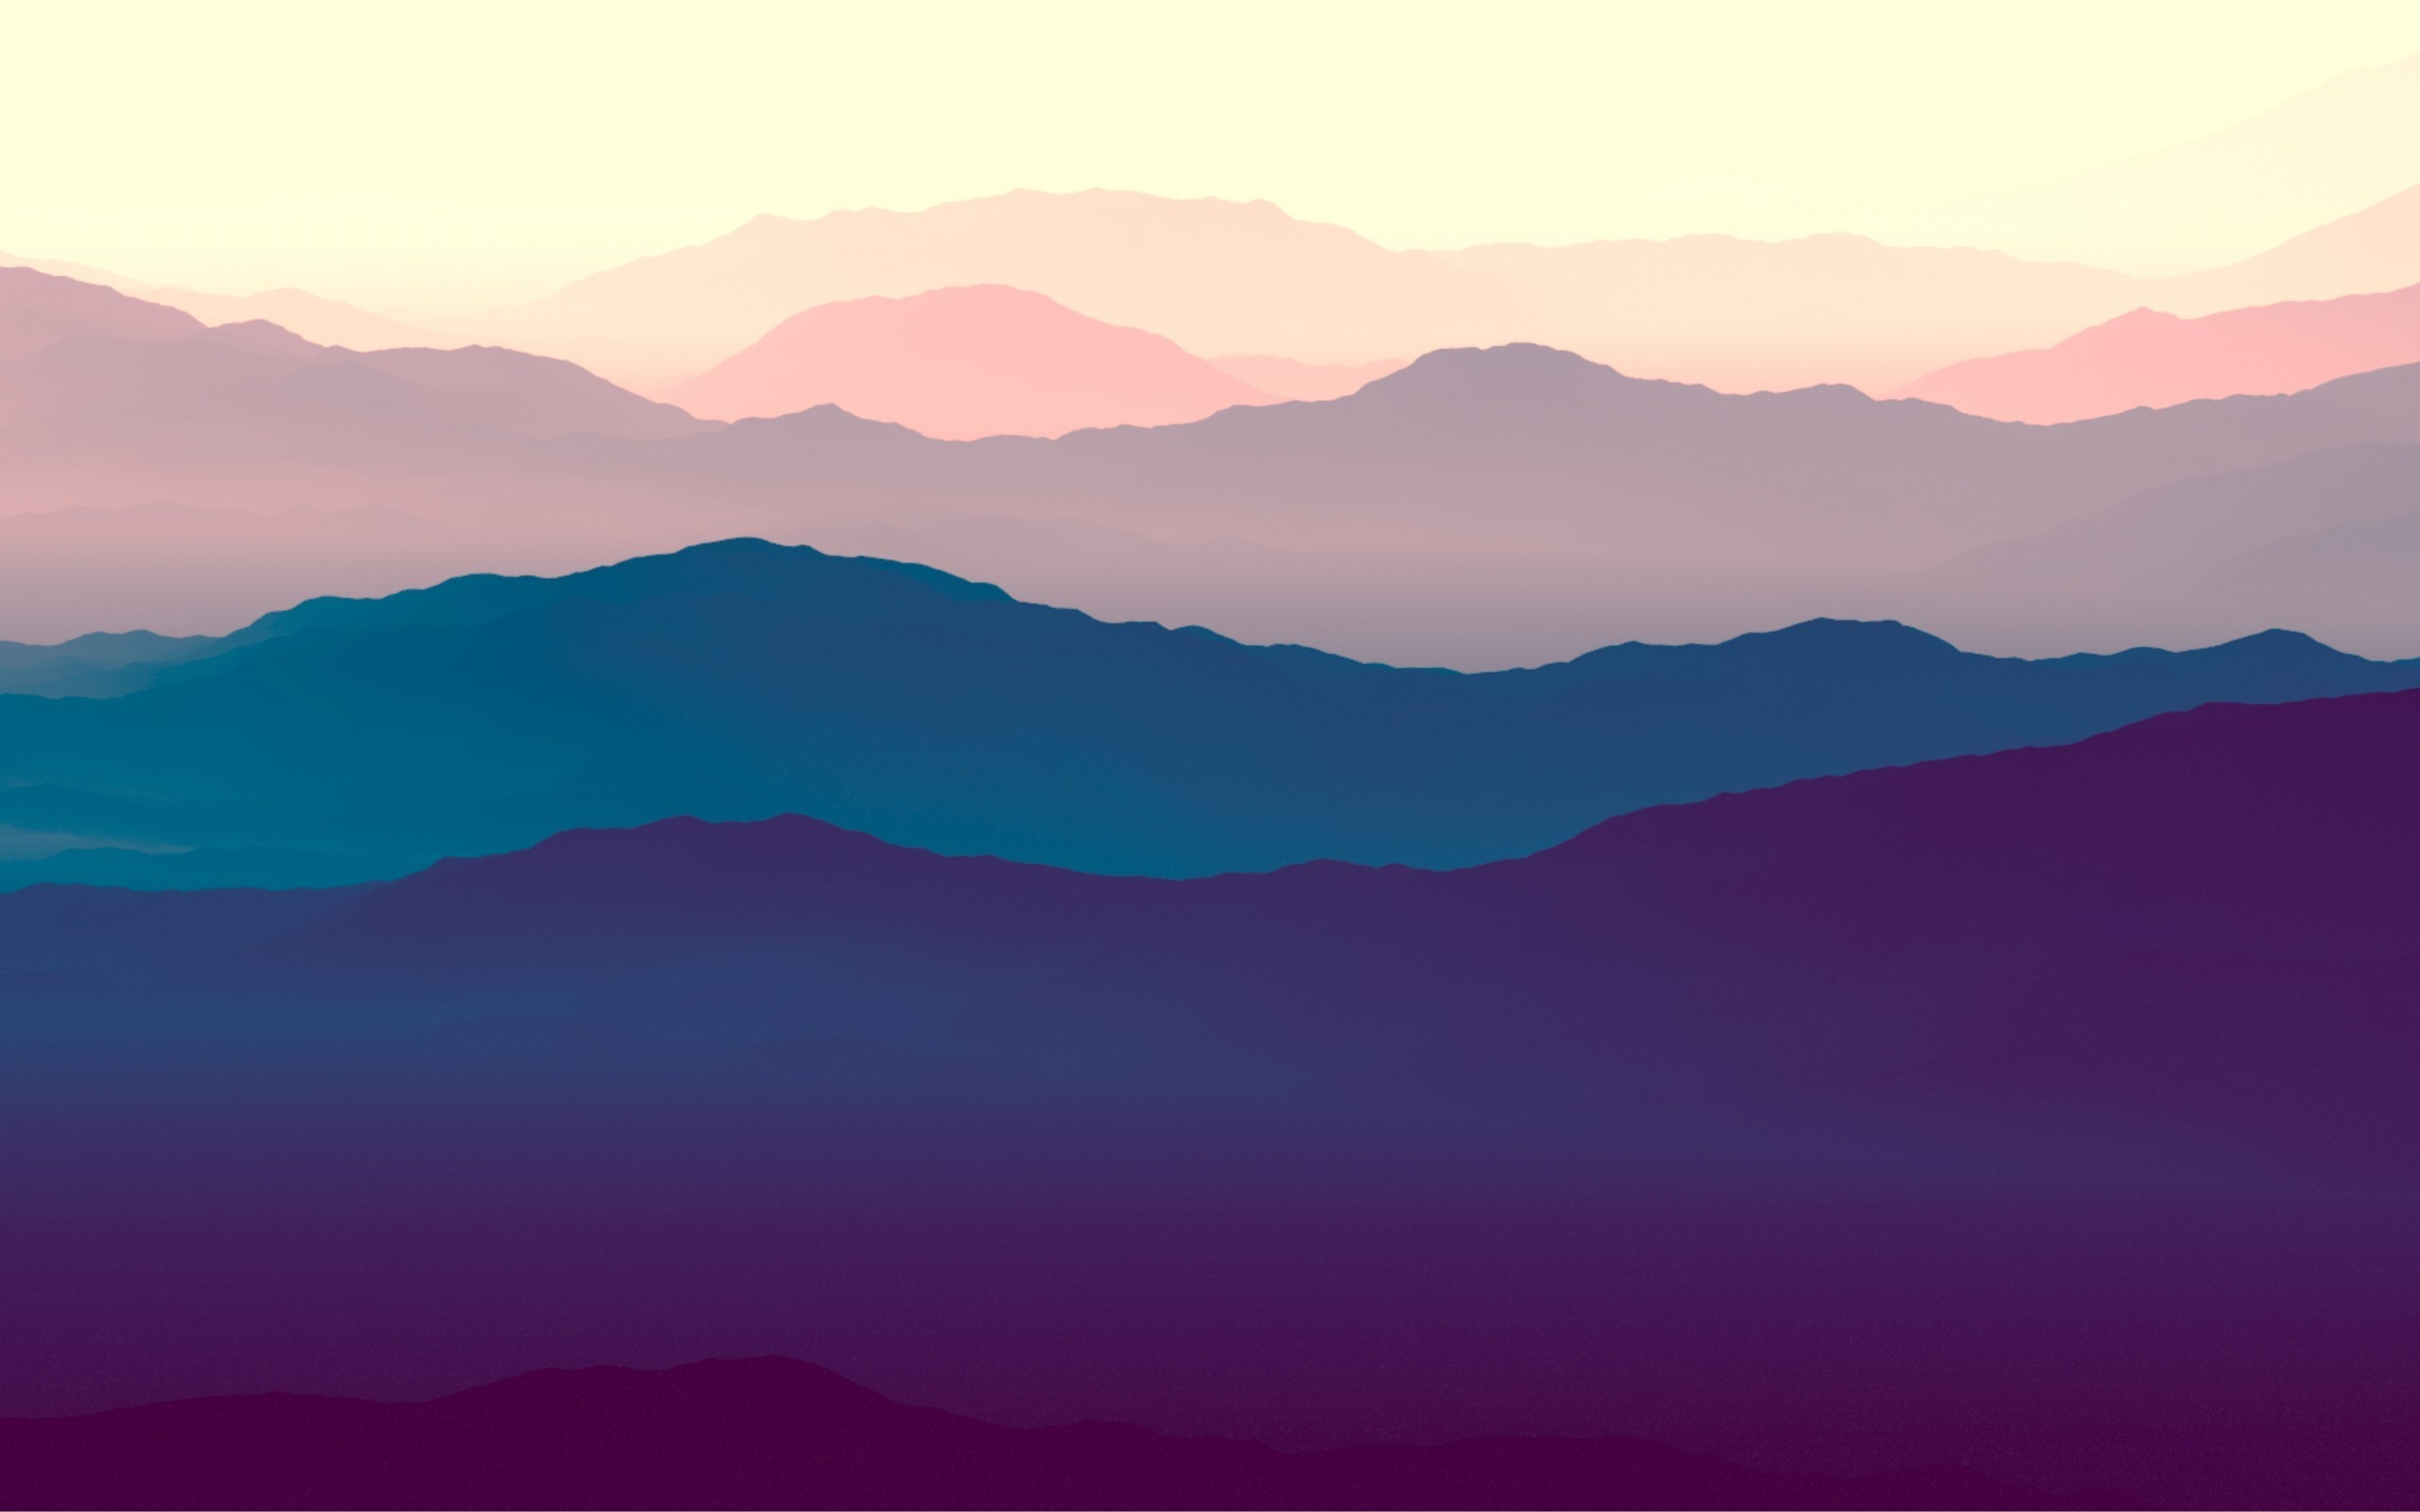 Res: 2560x1600, Mountains, Hills, Silhouette